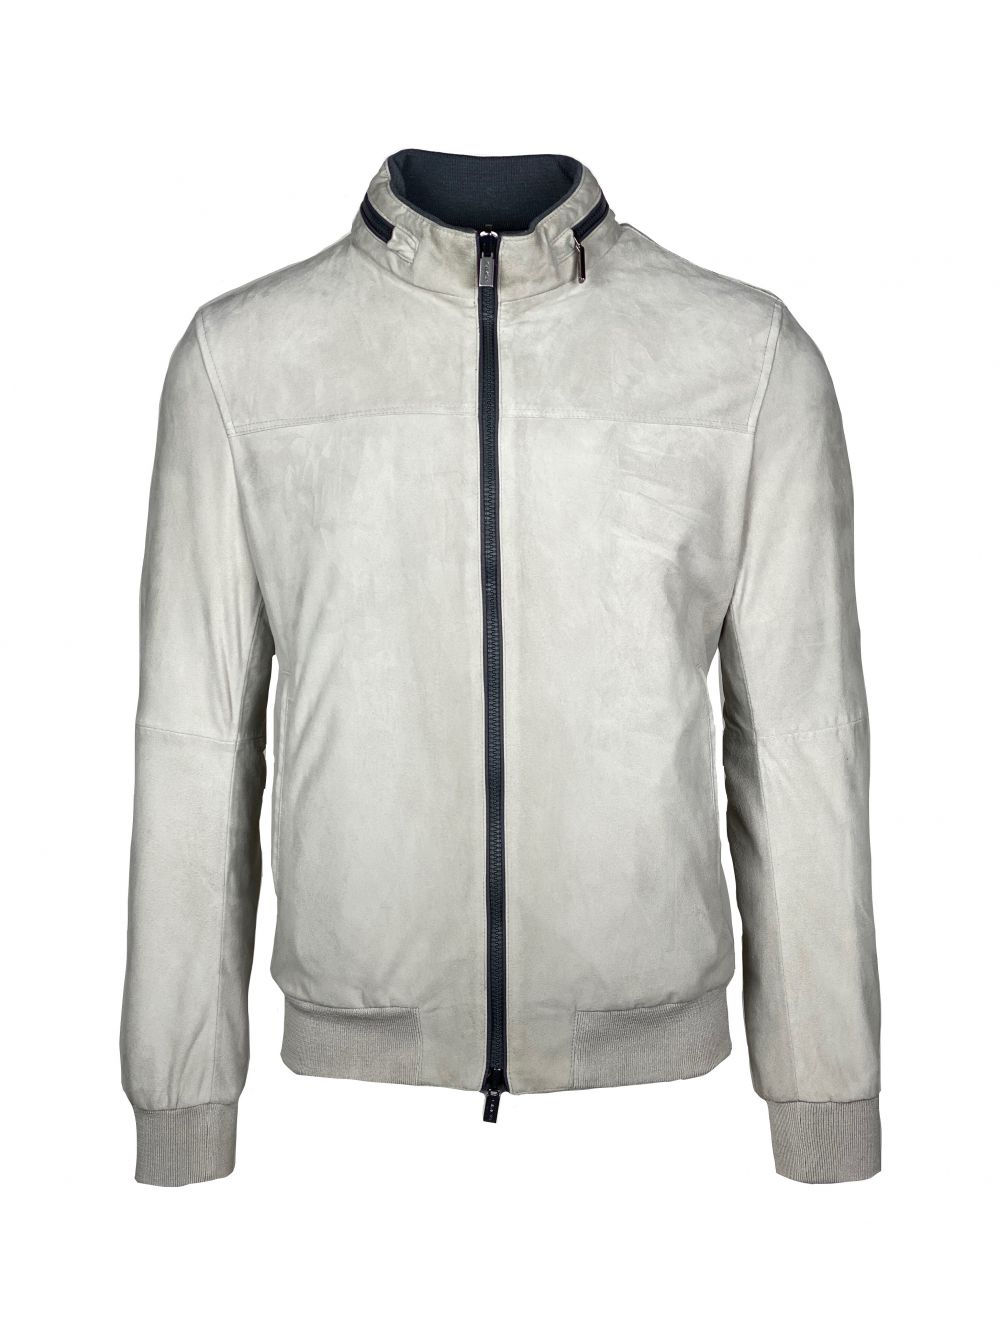 GIMO'S Reversible Leather Jacket - Beige